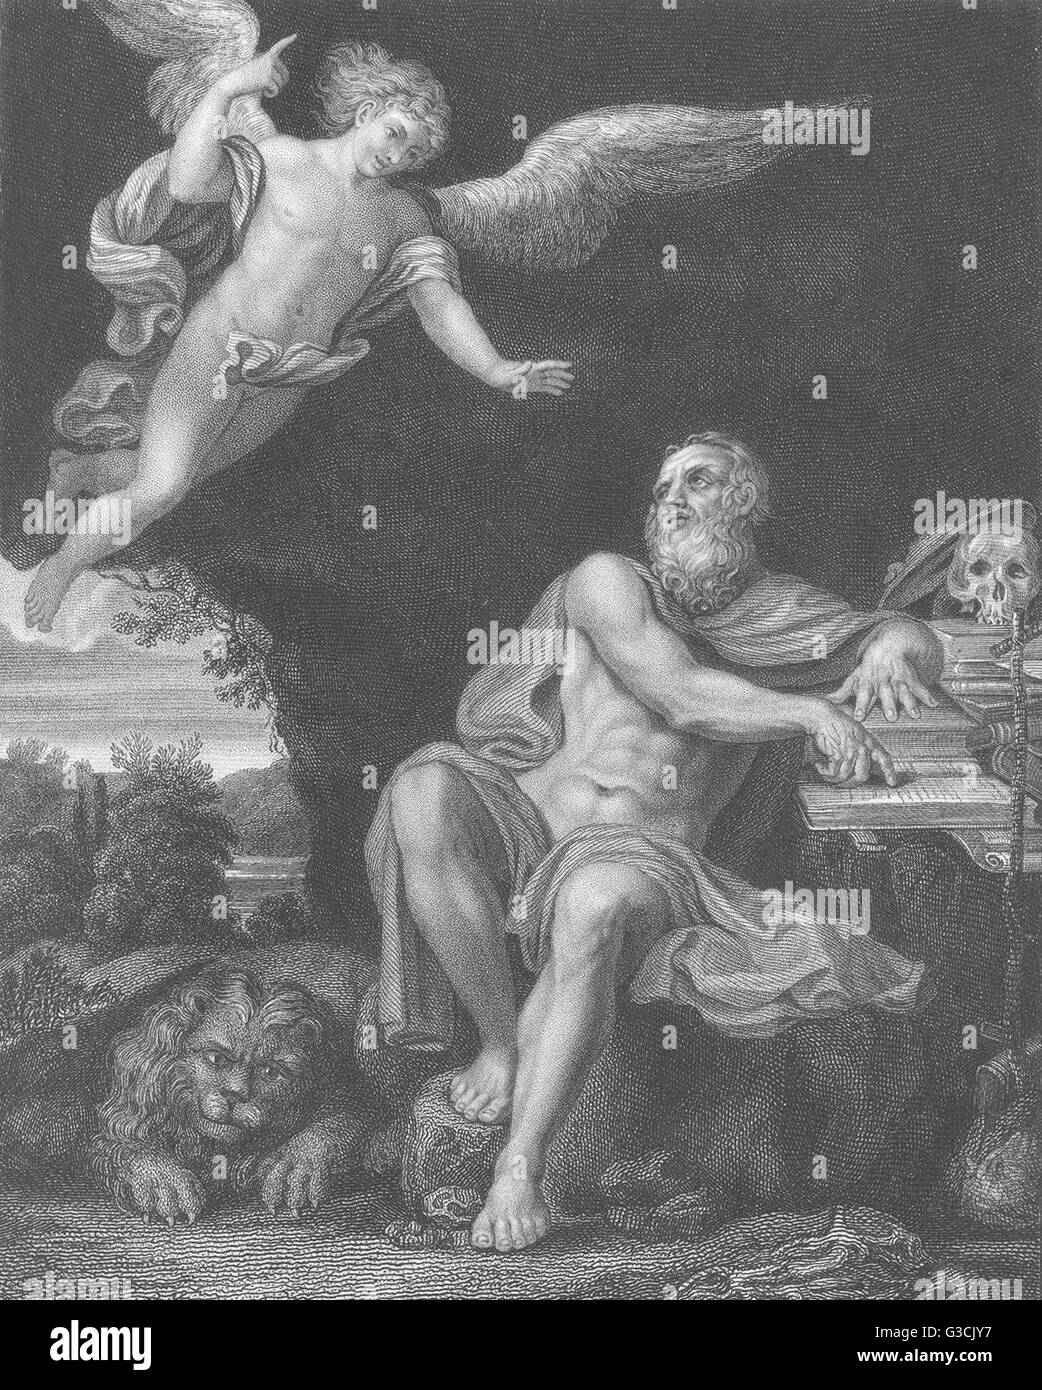 ST JEROME WITH THE ANGEL: Domenichino, antique print 1835 - Stock Image